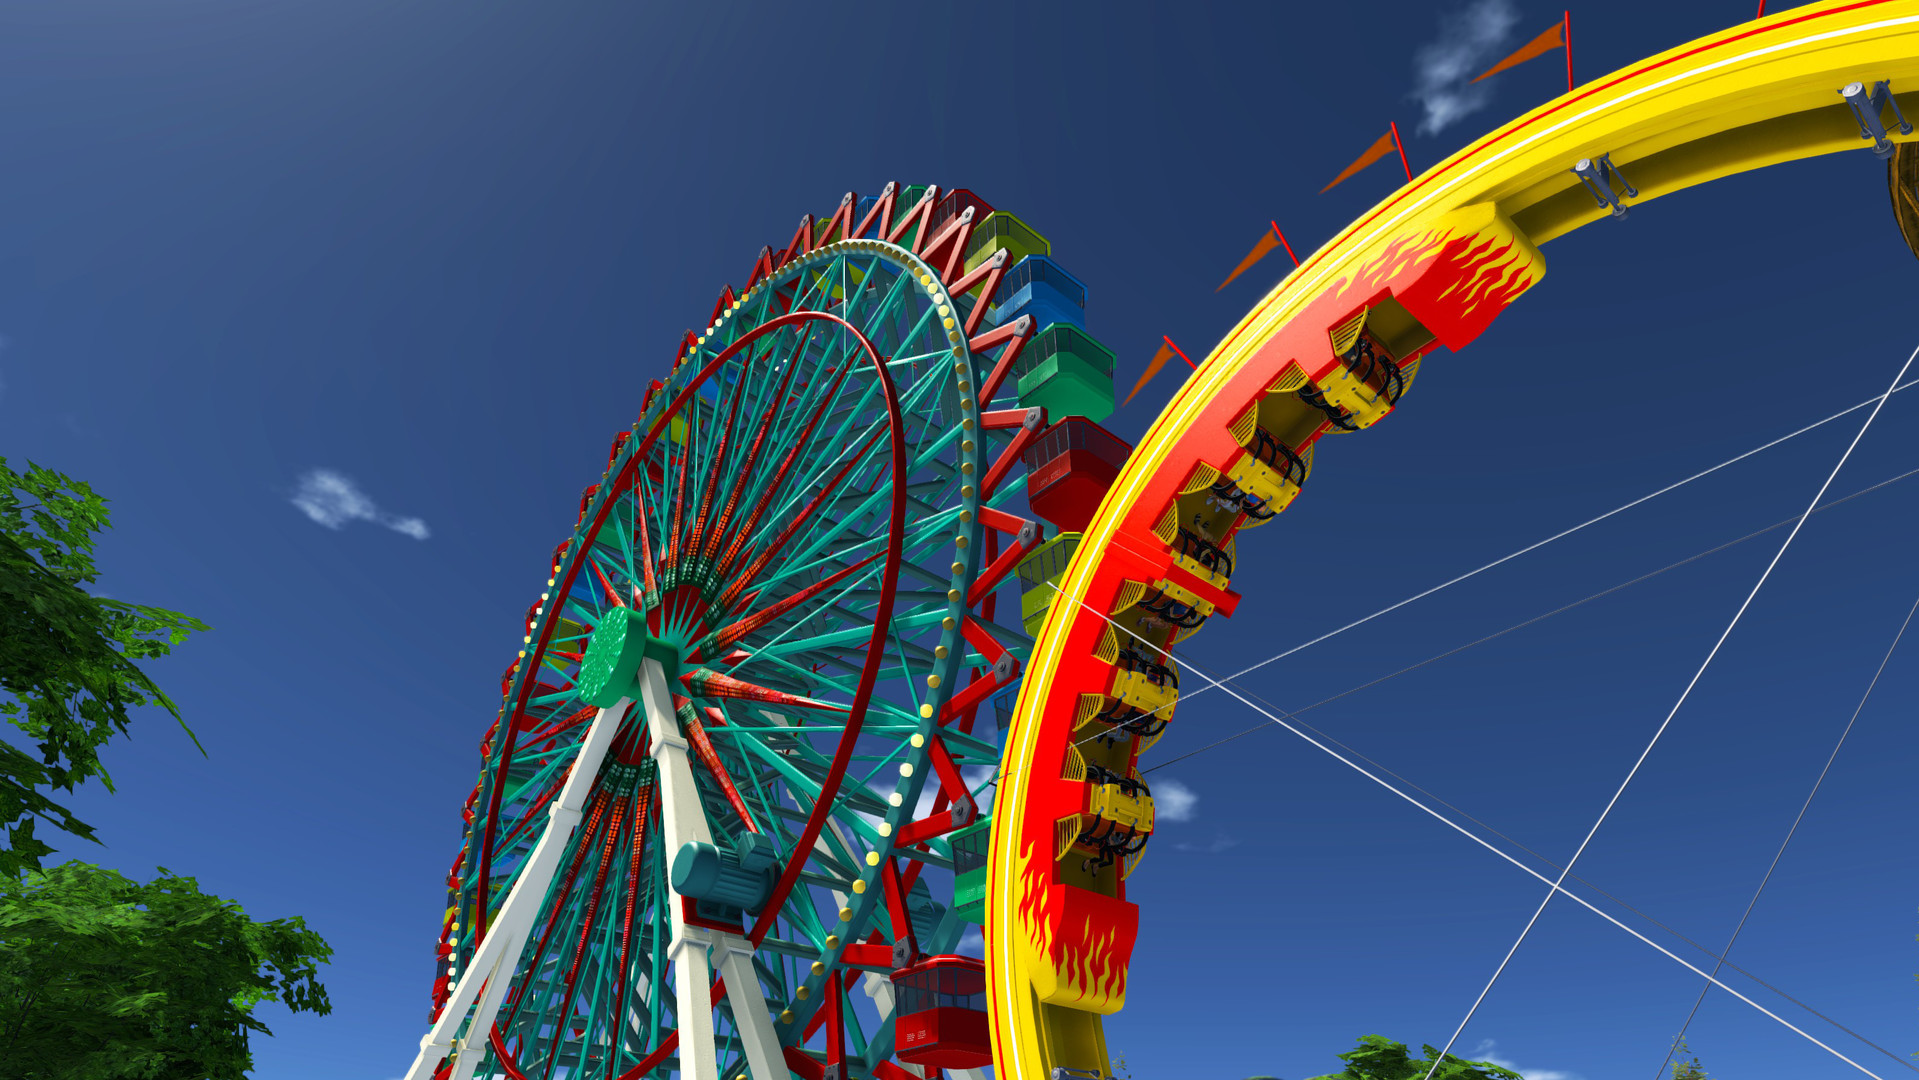 RollerCoaster Tycoon World release date announced, and it's one day